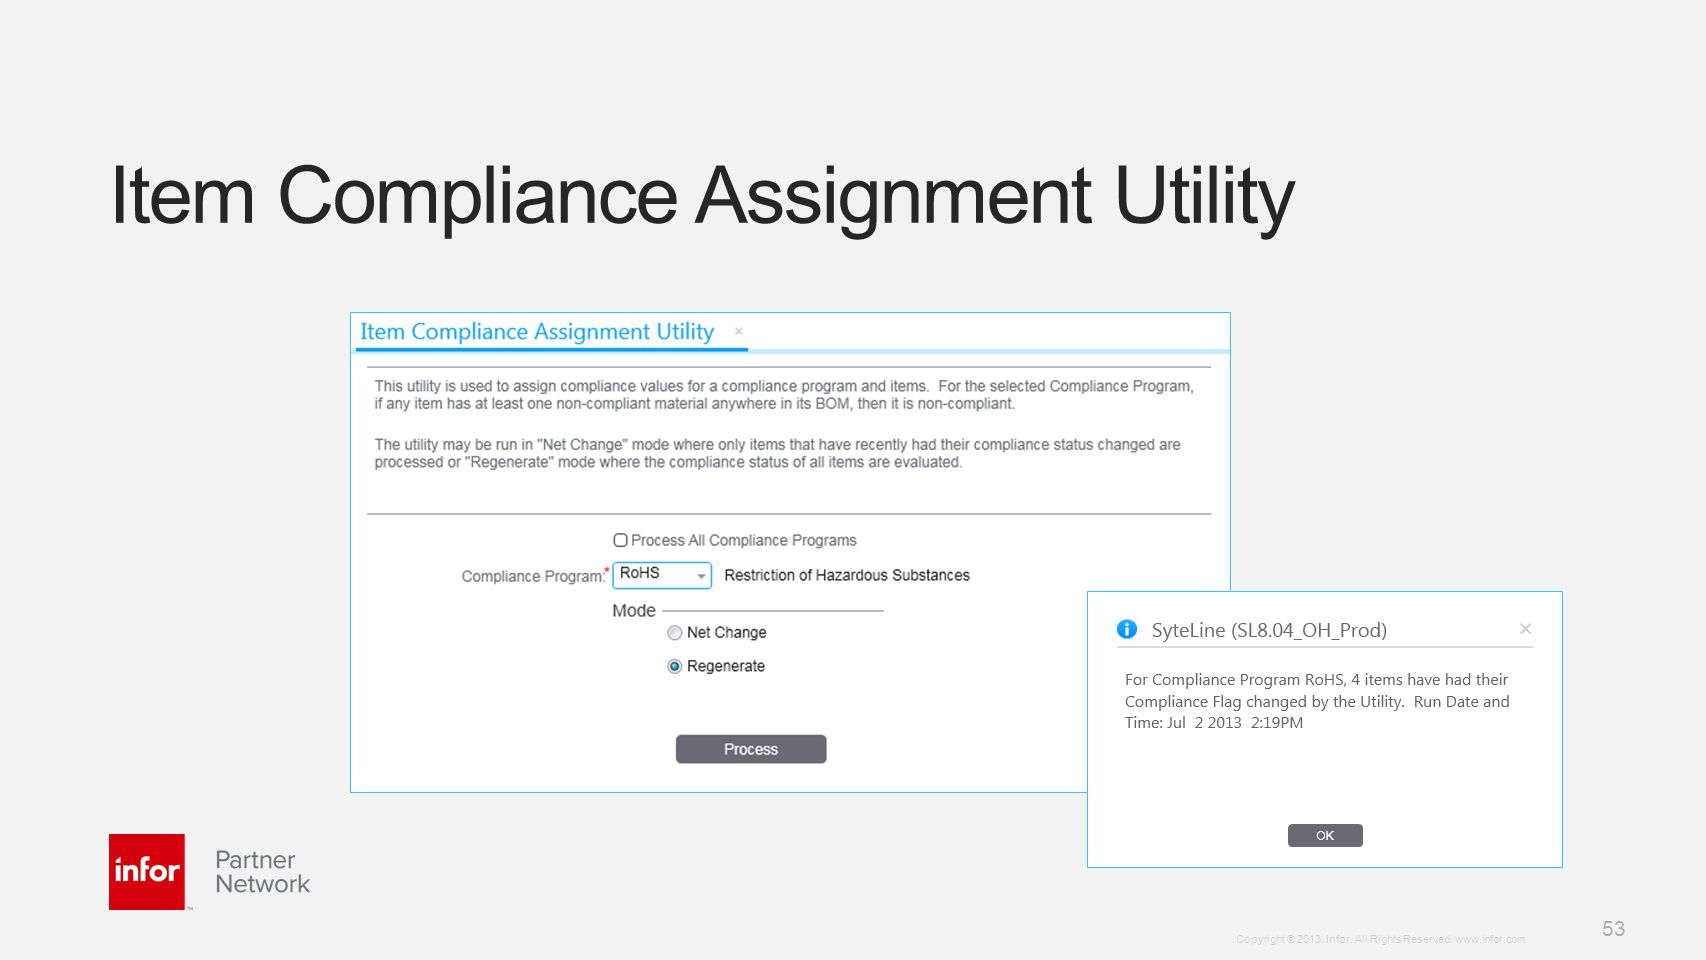 Item Compliance Assignment Utility